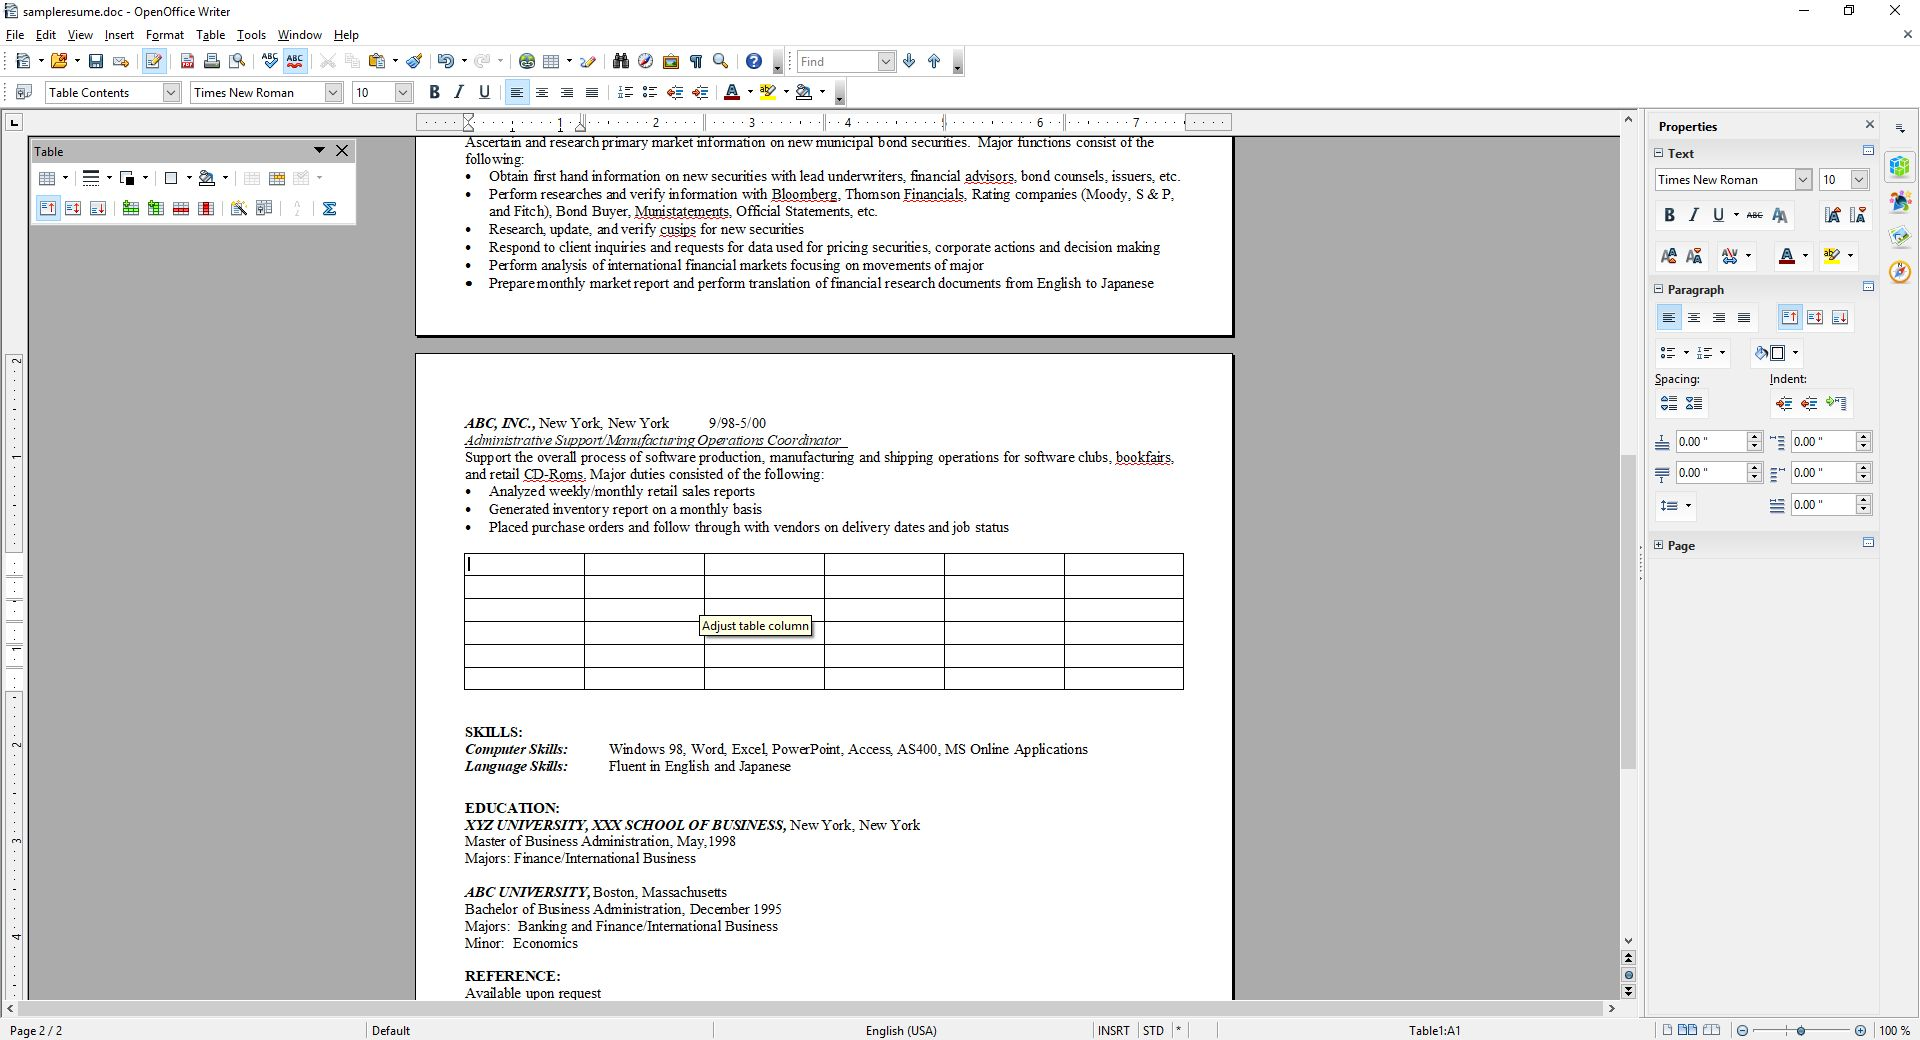 OpenOffice Insert Table